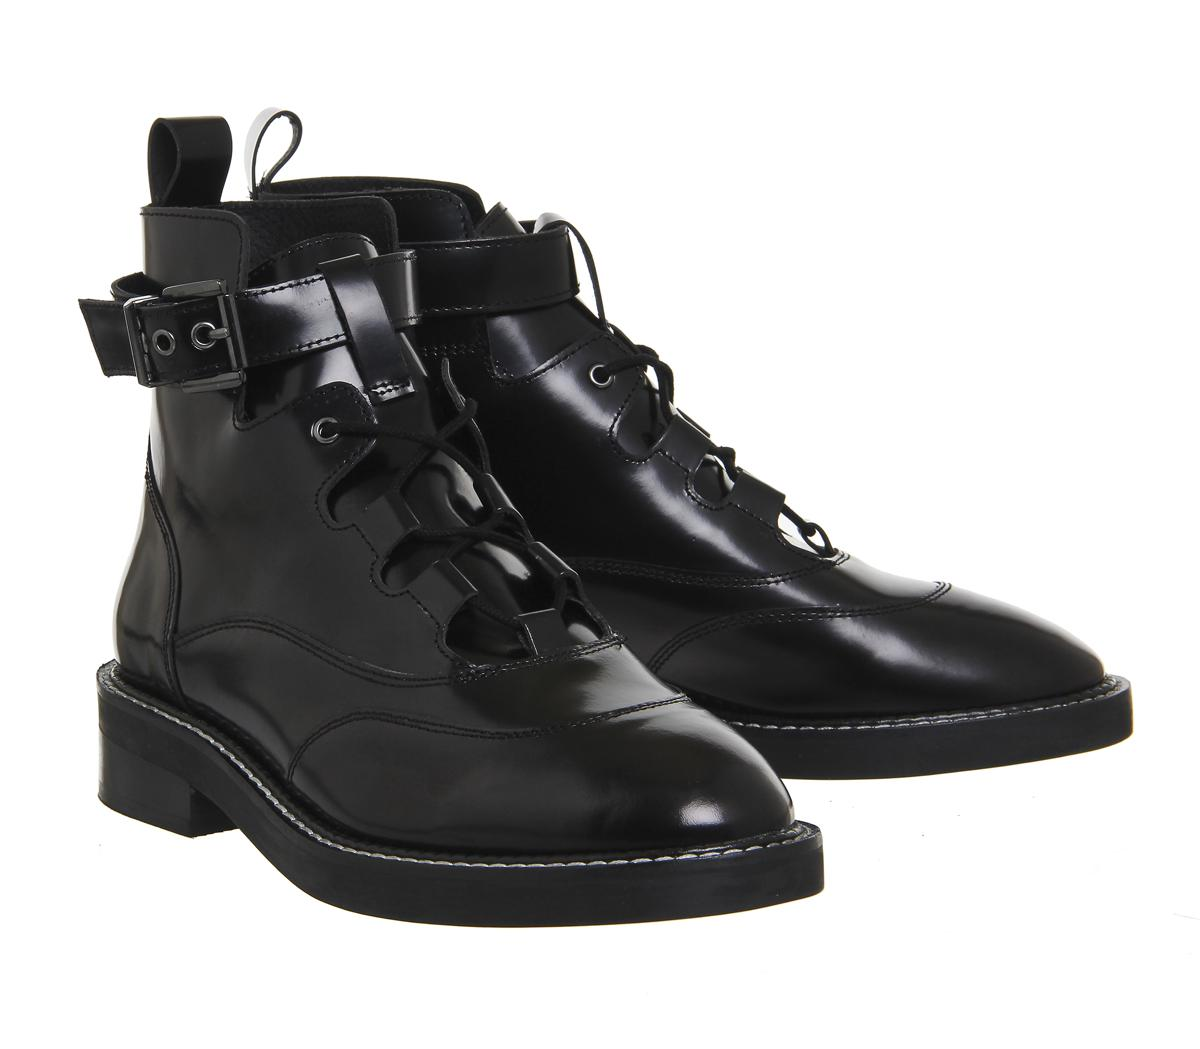 2a8ede8a35 Lyst - Office Lava Lace Up Buckle Boots in Black